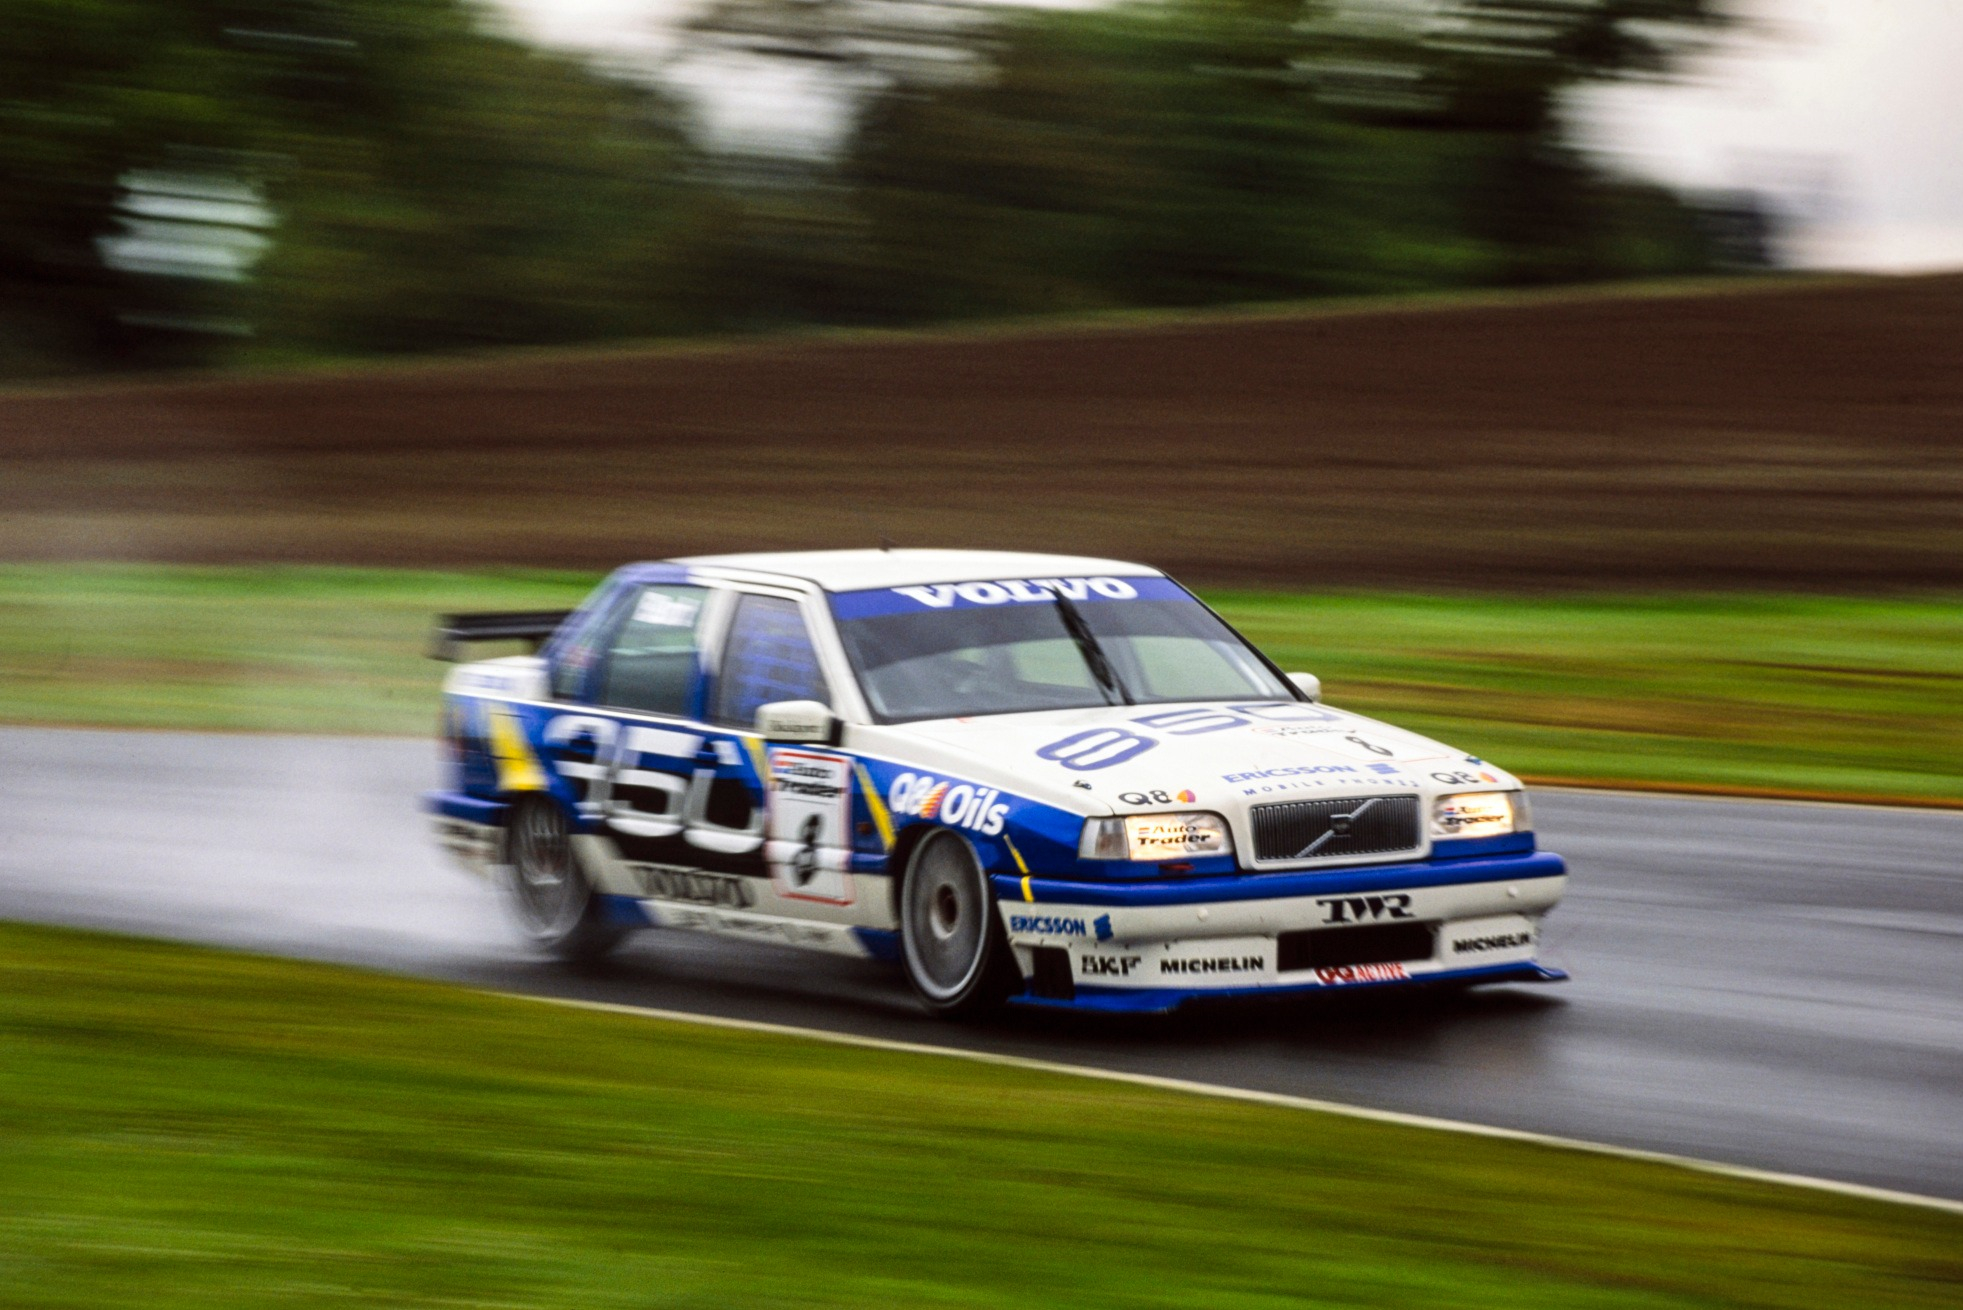 Burt's Oulton Park shunt created a vacancy for Davies, who found the Volvo particularly edgy to drive